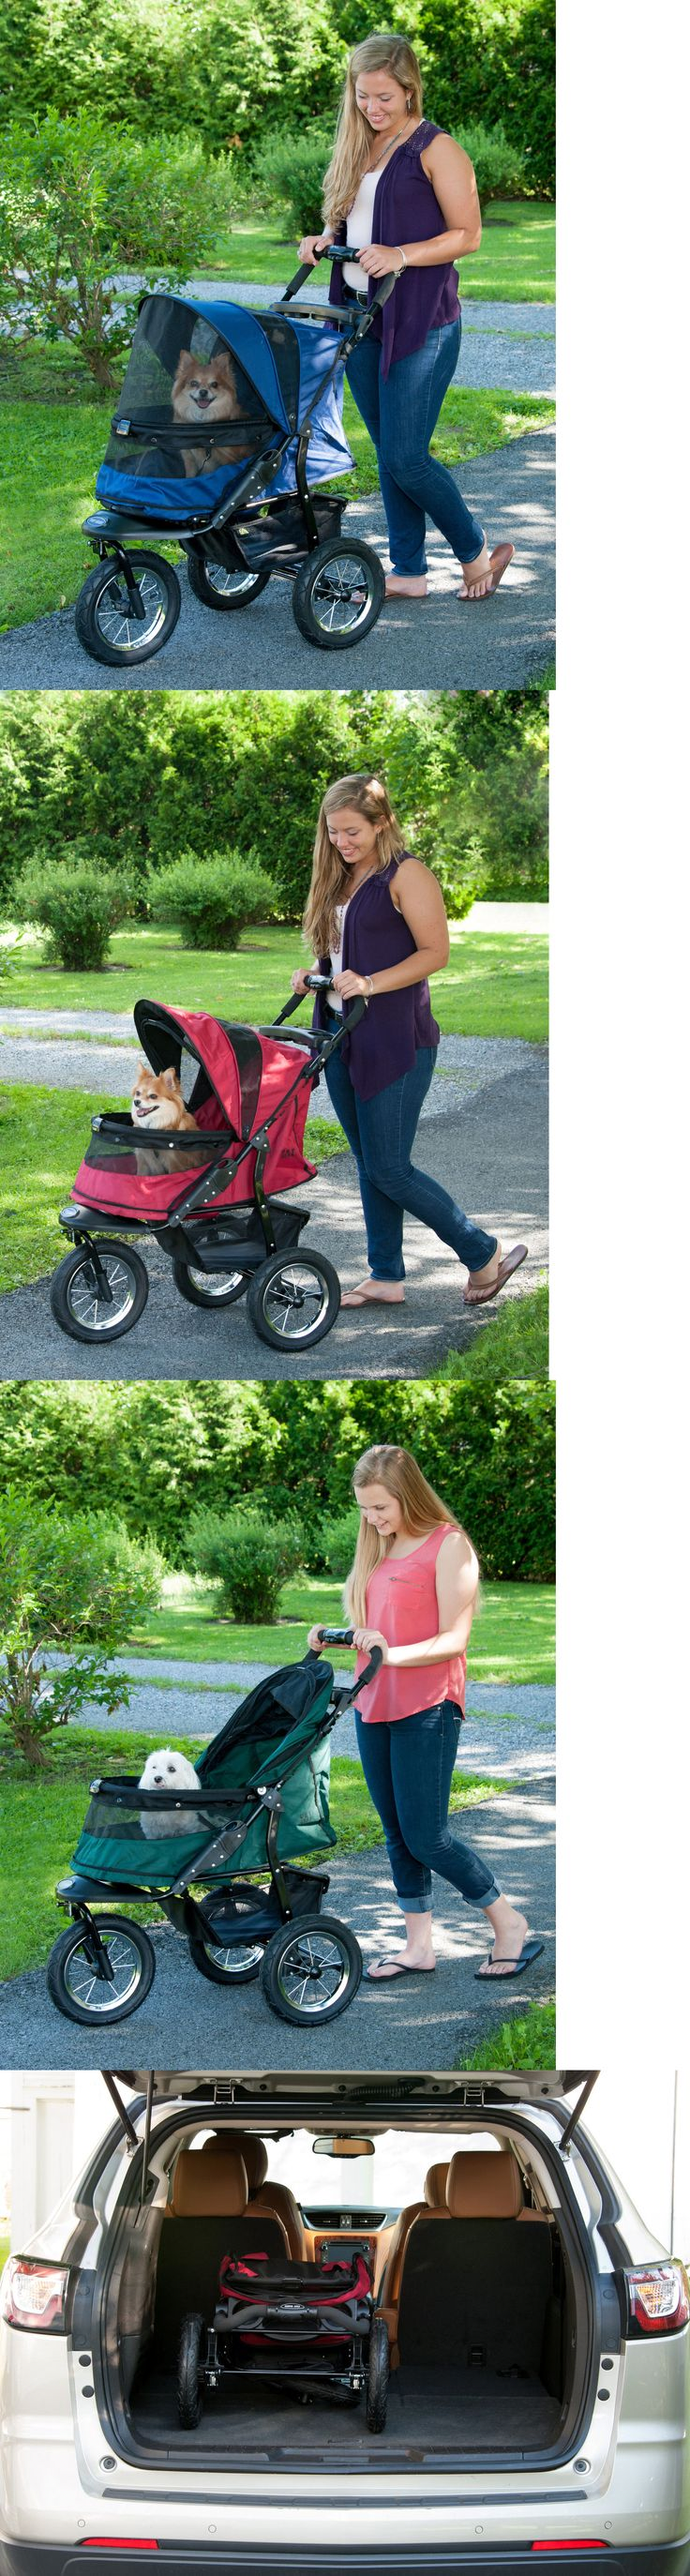 Strollers 116380: New! Pet Gear Jogger No-Zip Dog Cat Stroller With Easy-Locking Latch -> BUY IT NOW ONLY: $224.95 on eBay!